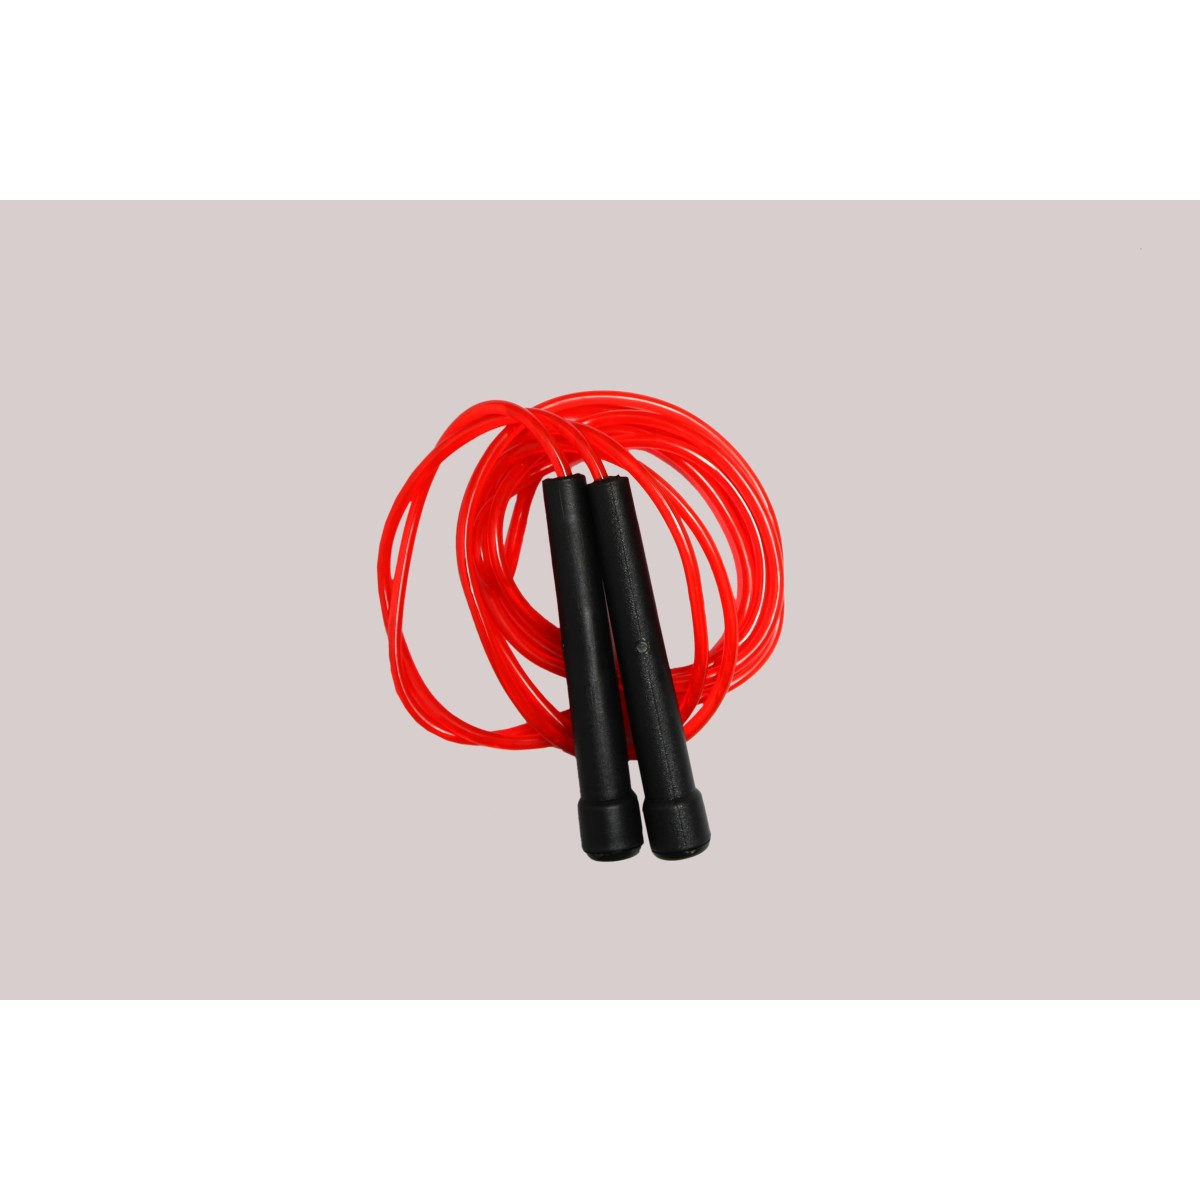 Malino Premium Light Skipping Rope Red with Black Handle